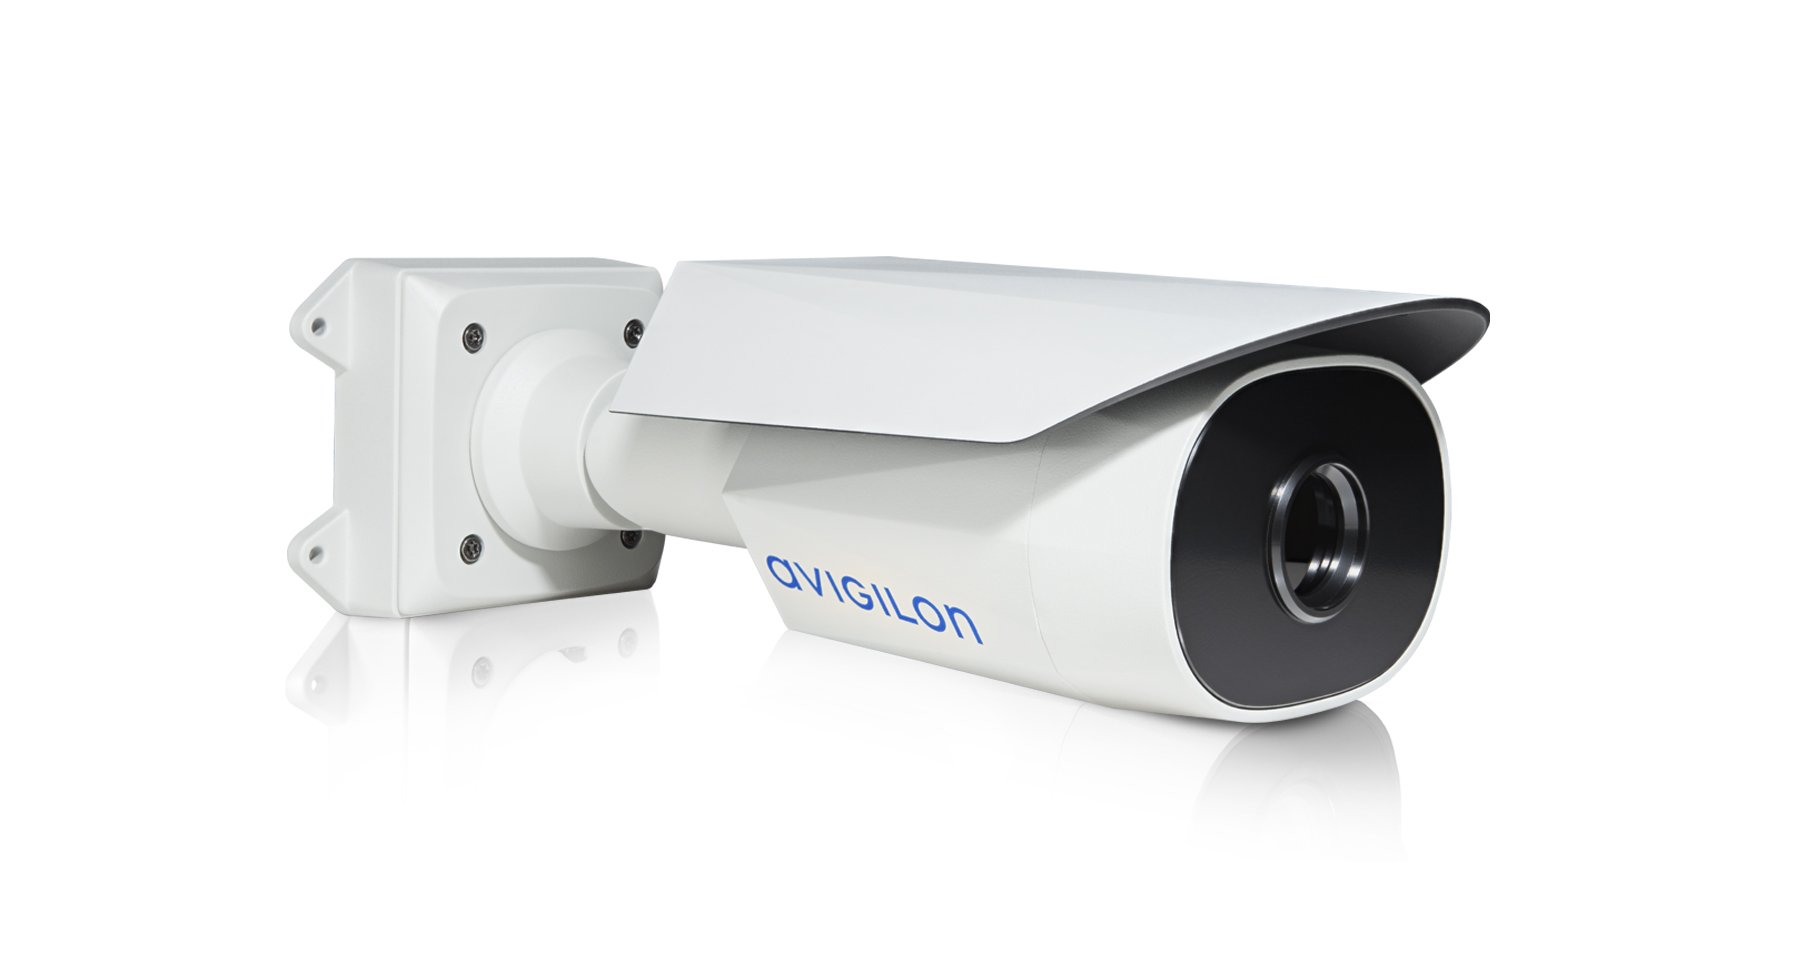 Kohltech Avigilon H4 Thermal Camera